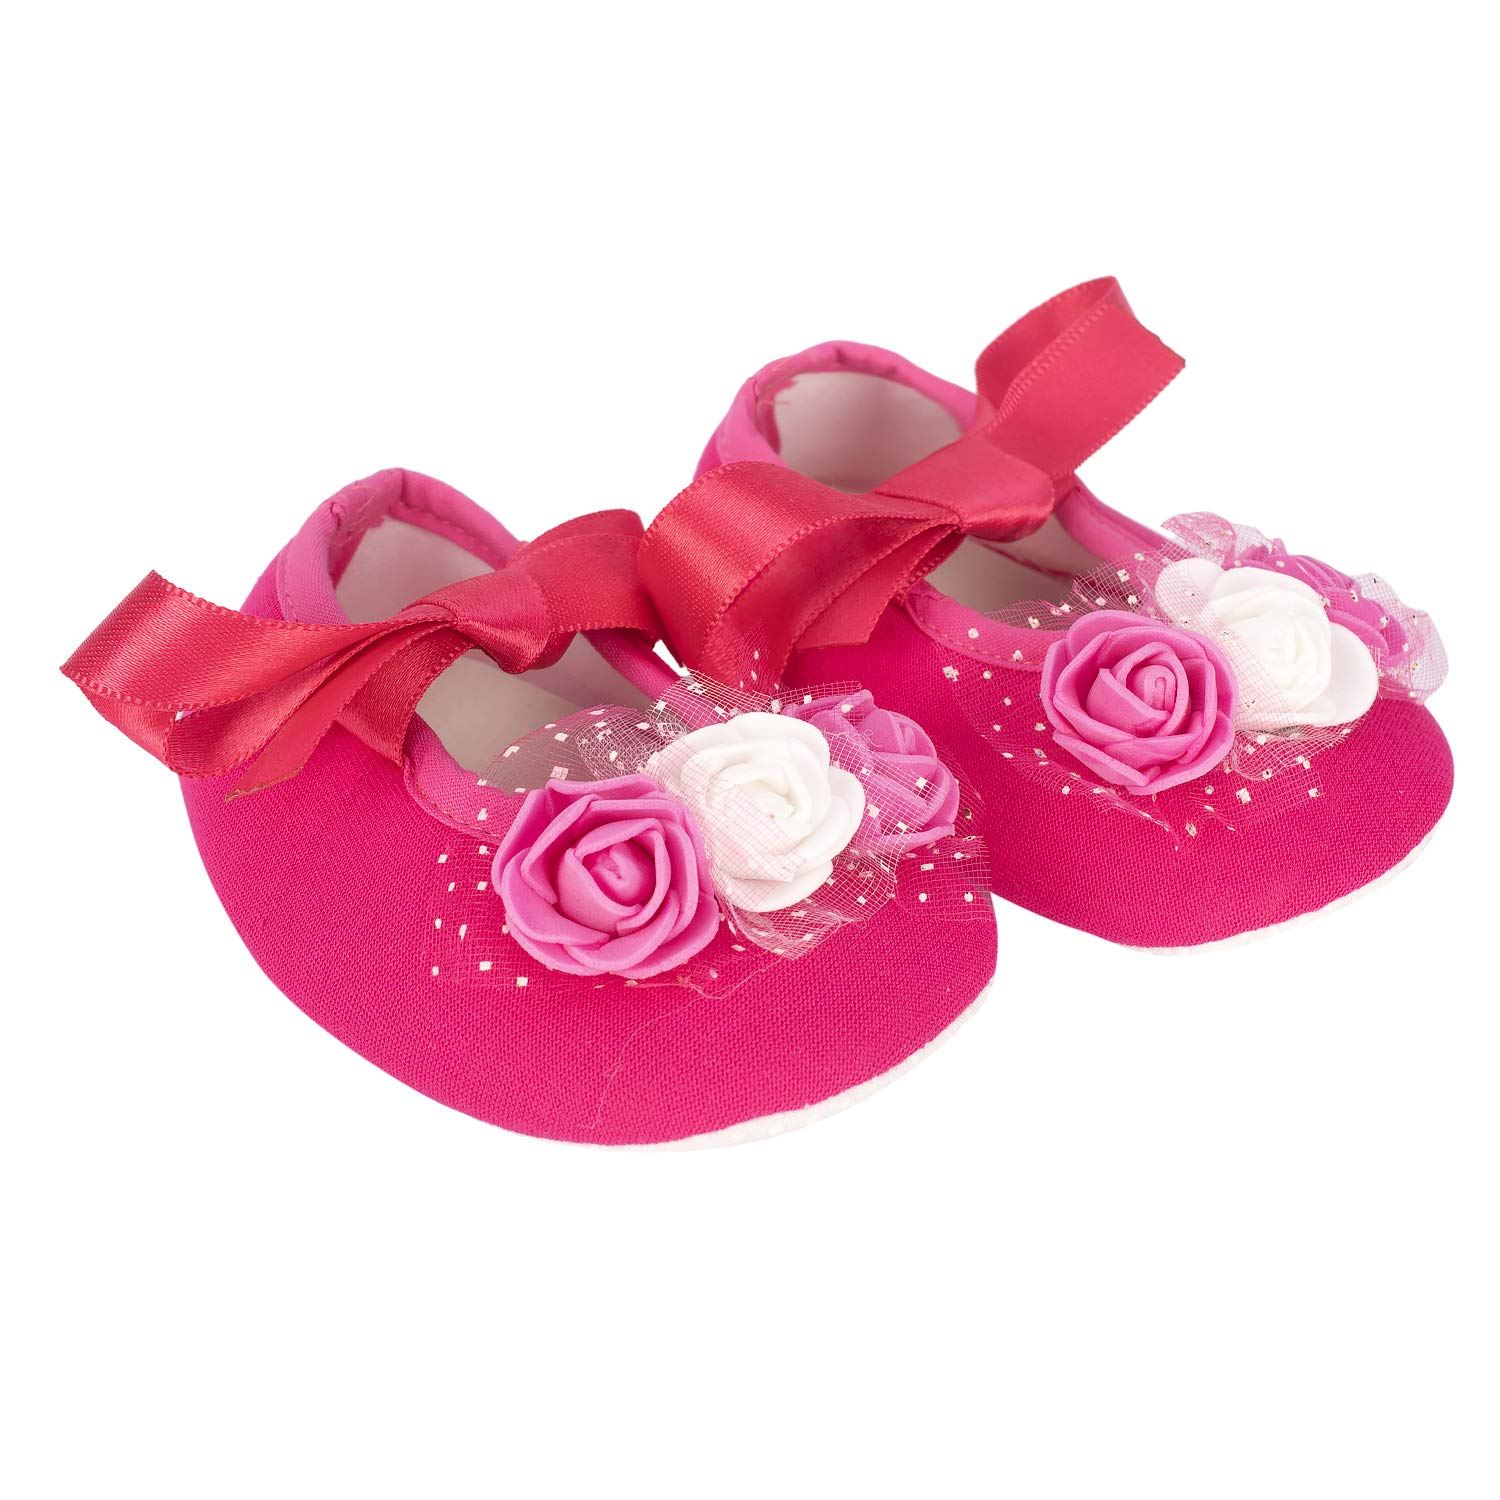 Daizy Stylish Pink Shoes/Booties with